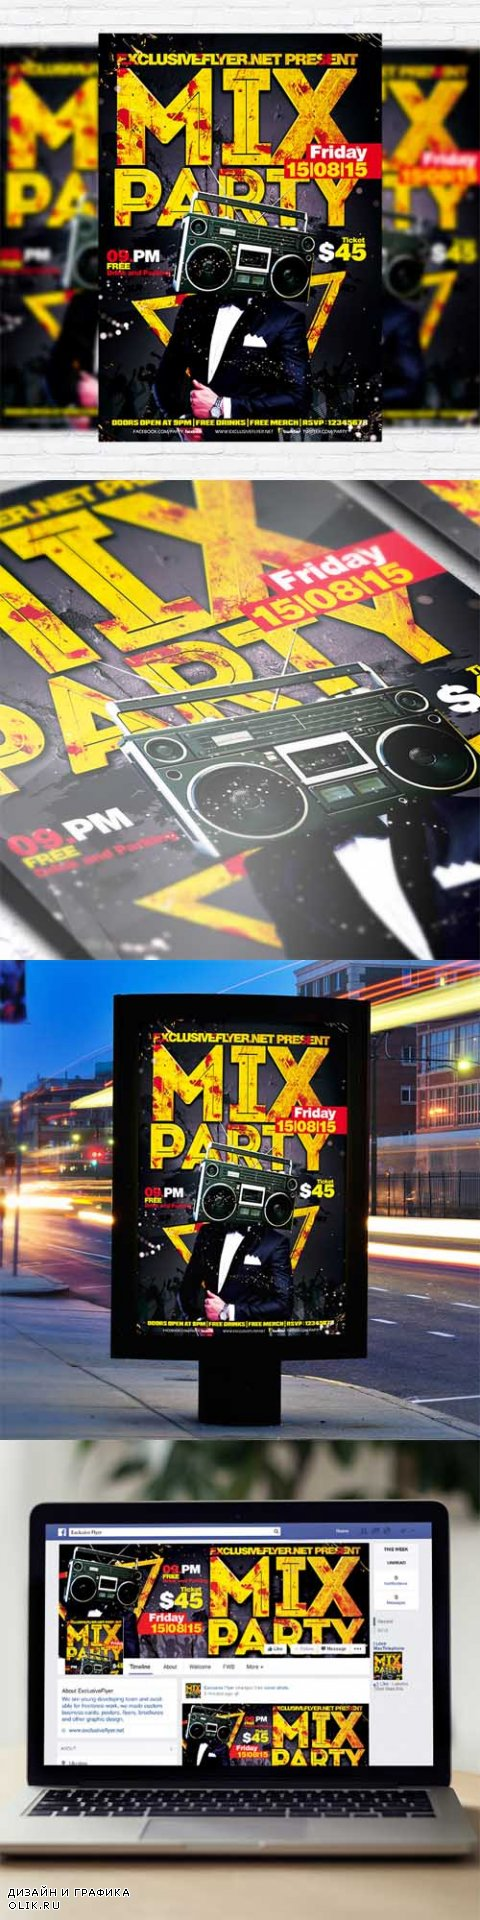 Flyer Template - Mix Party + Facebook Cover